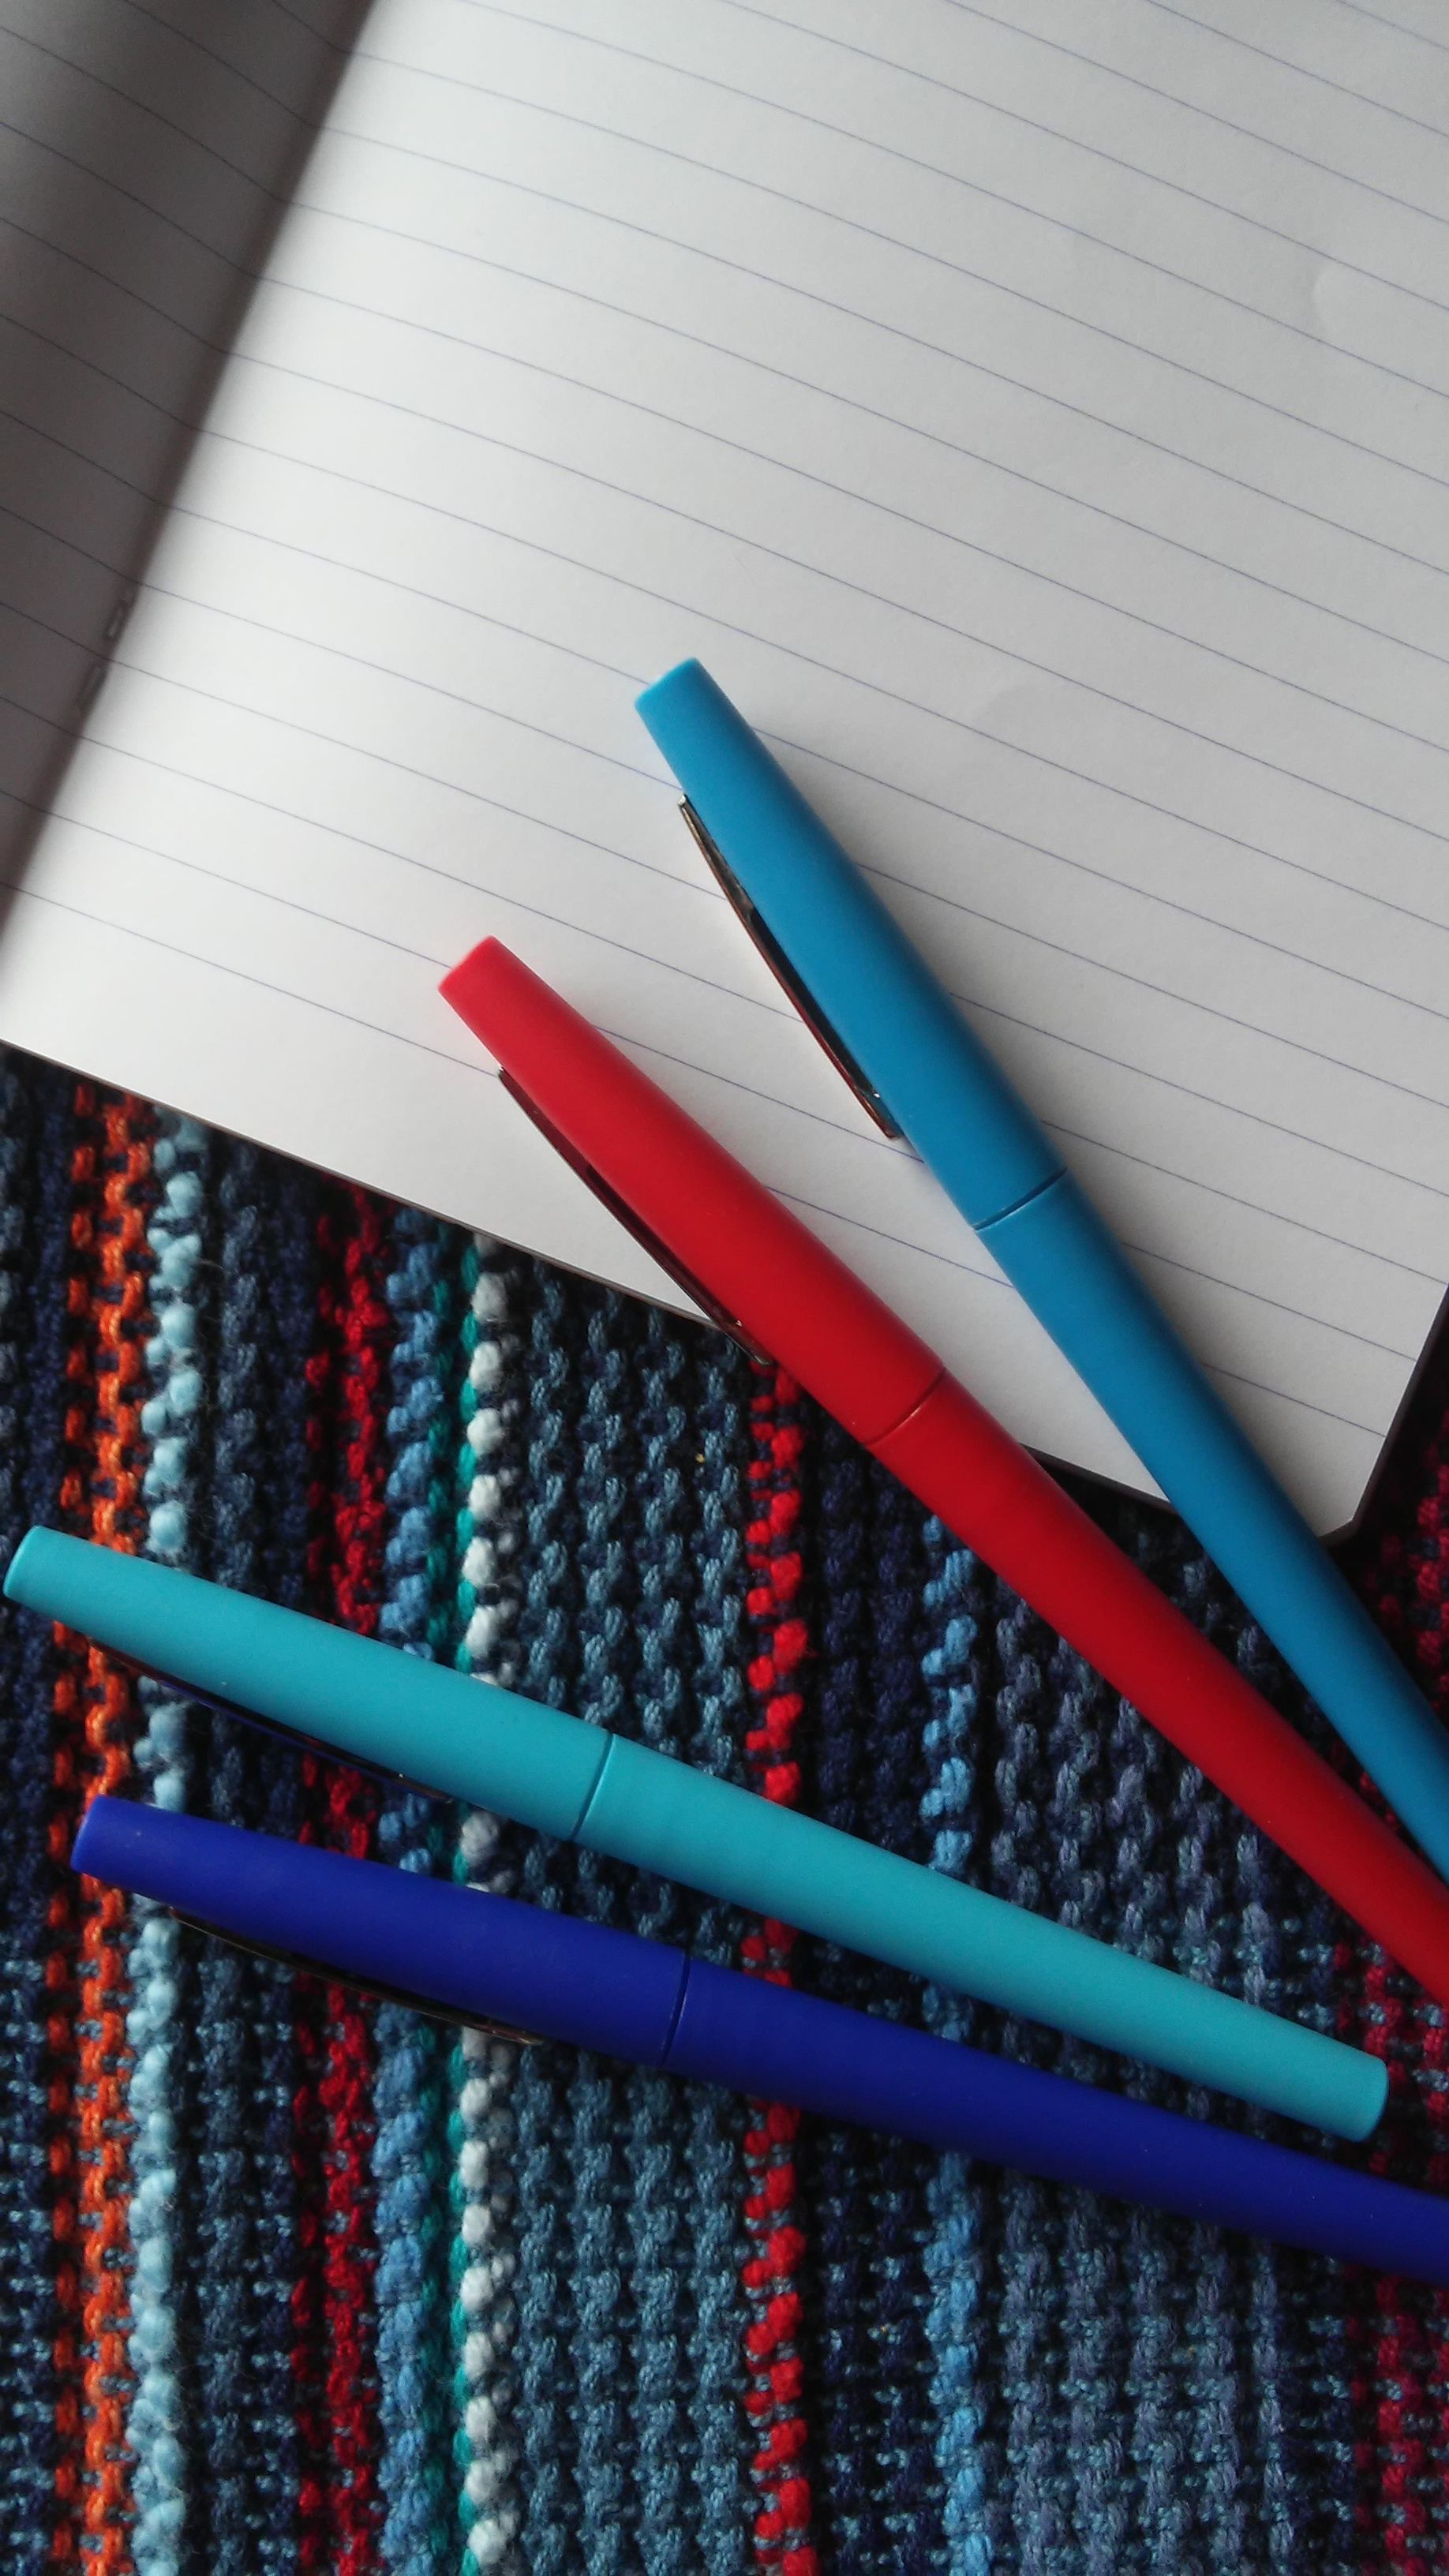 interwoven editing pens and notebook vertical.jpg